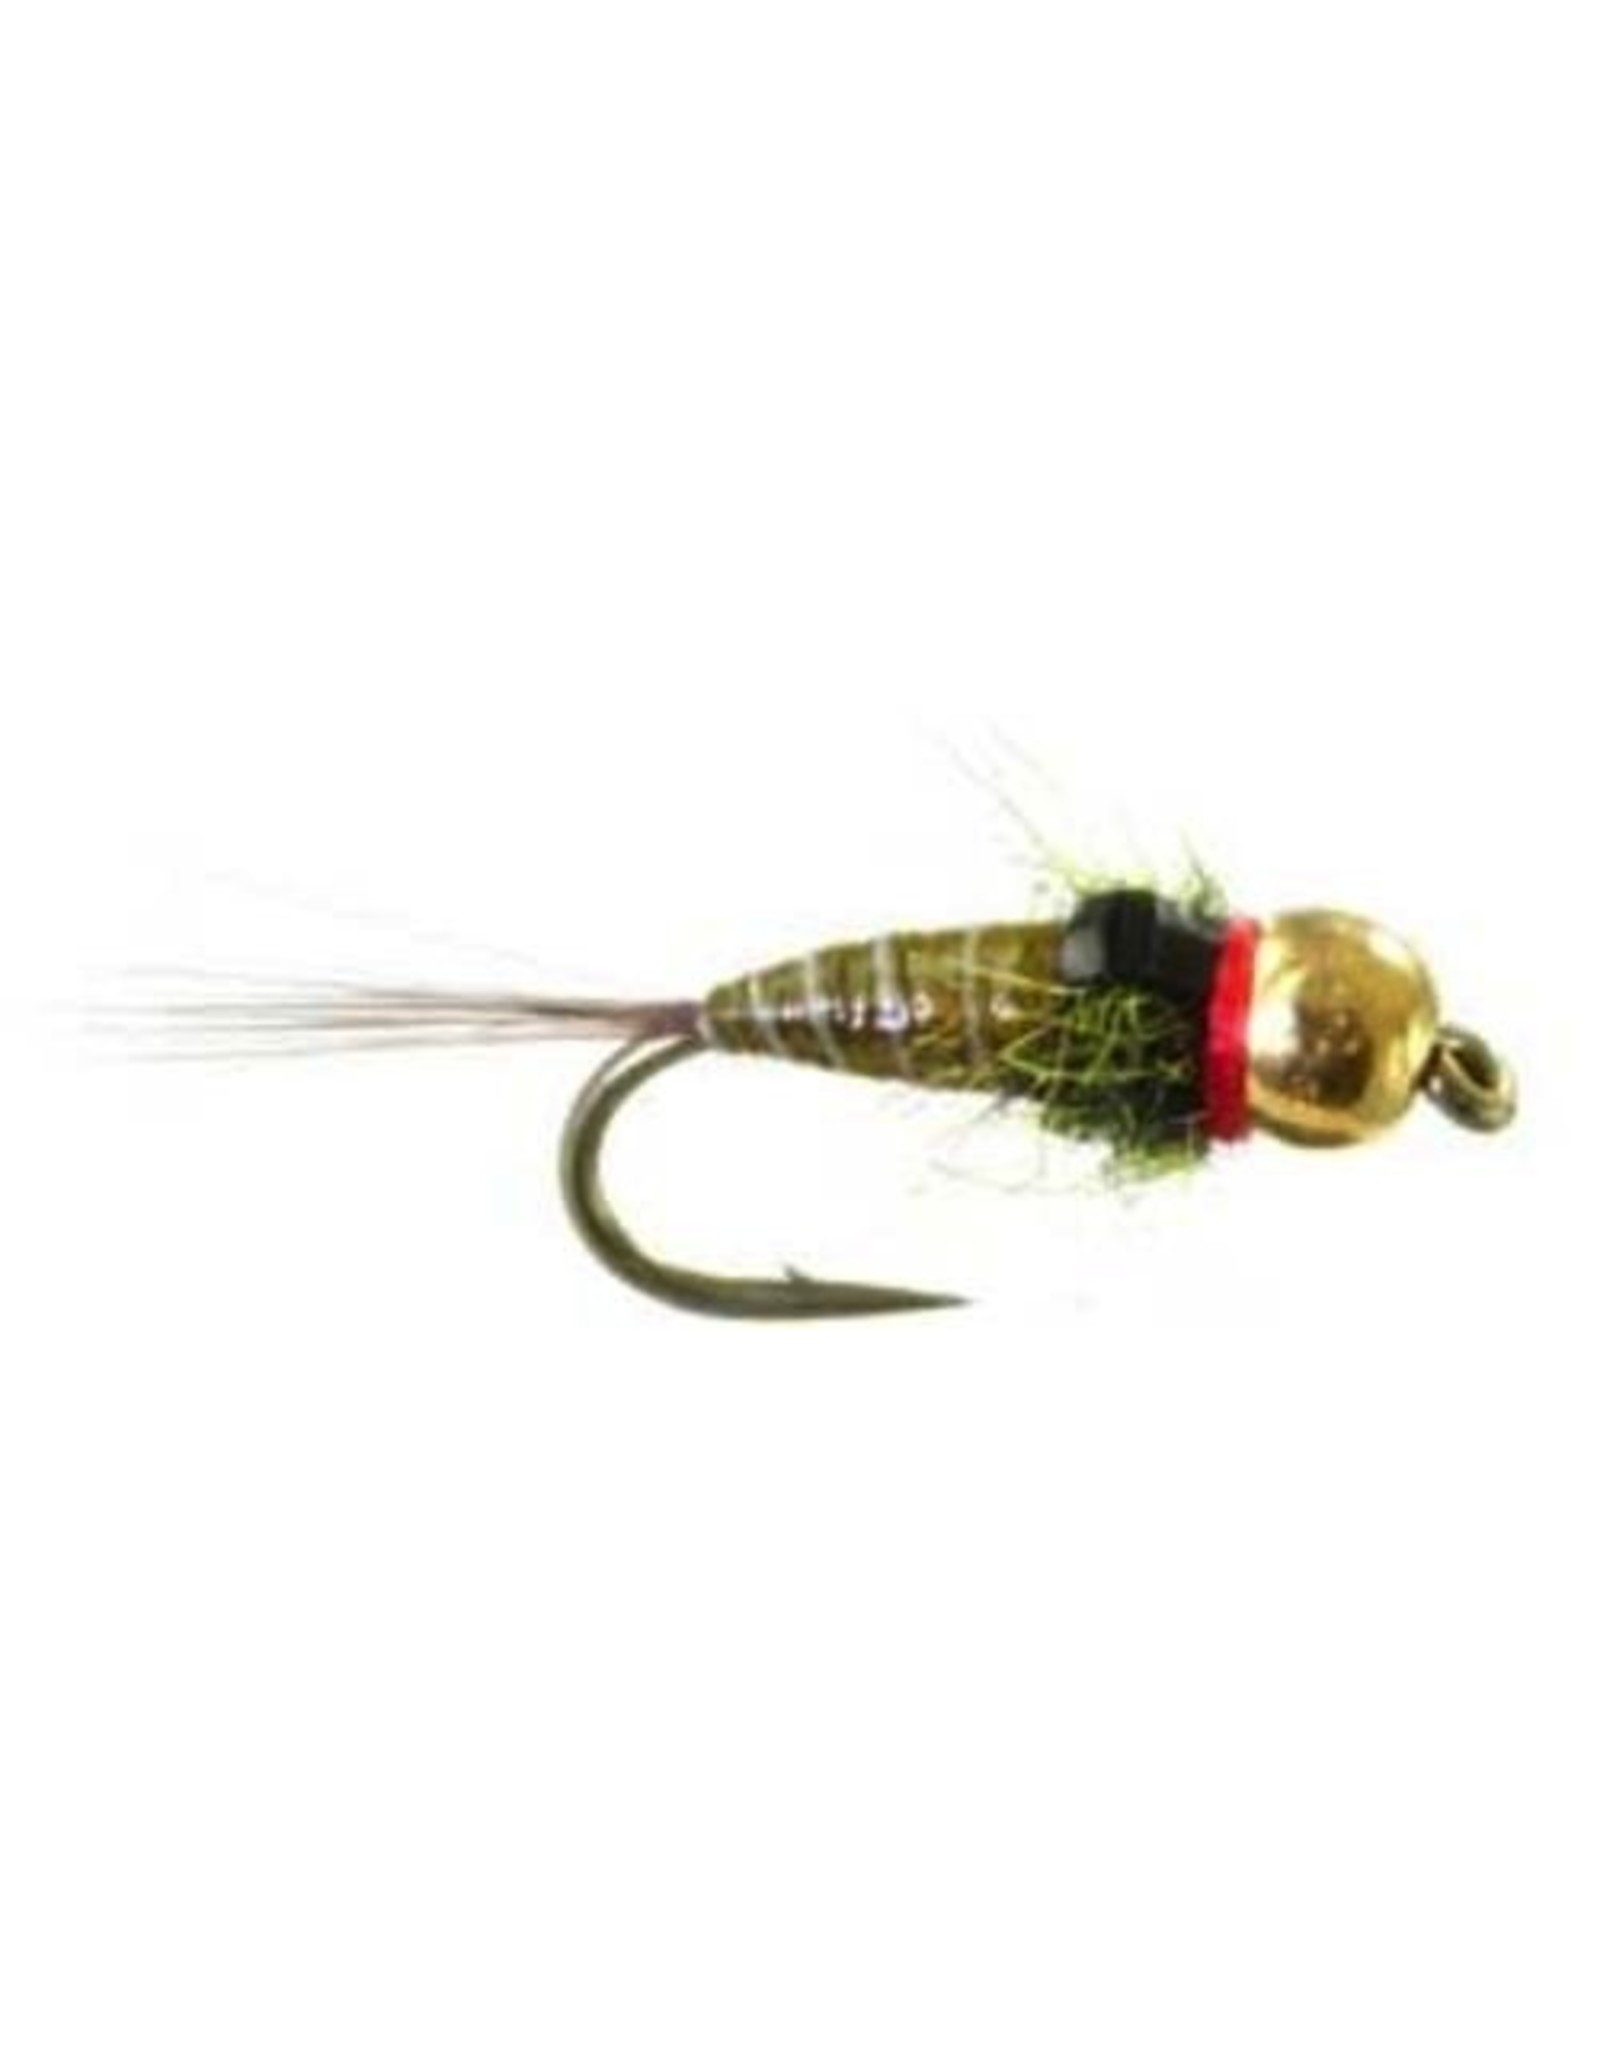 Umpqua Iron Lotus BWO (3 Pack)